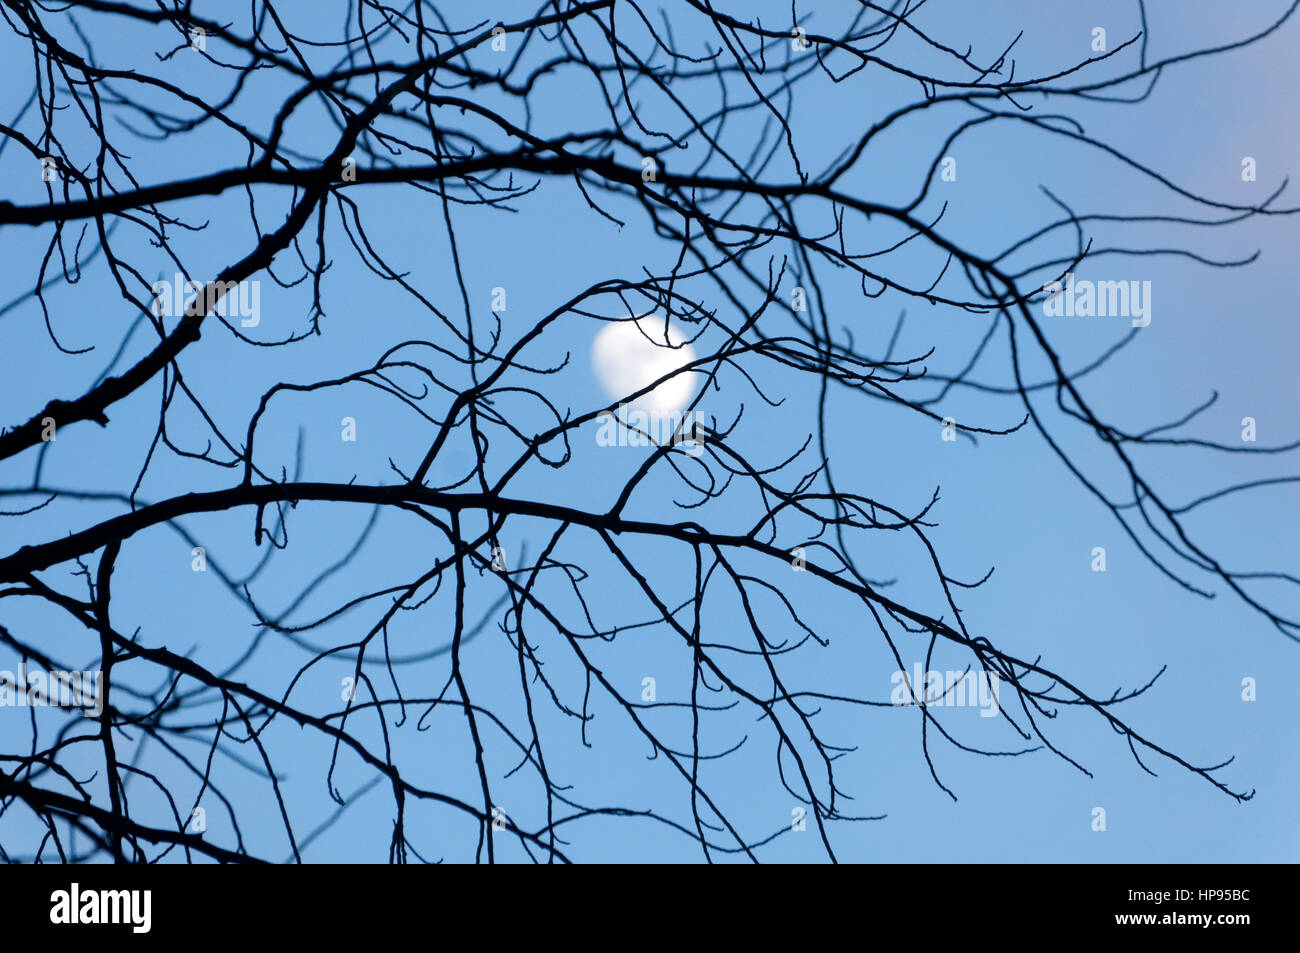 moon-shining-through-bare-tangled-branch